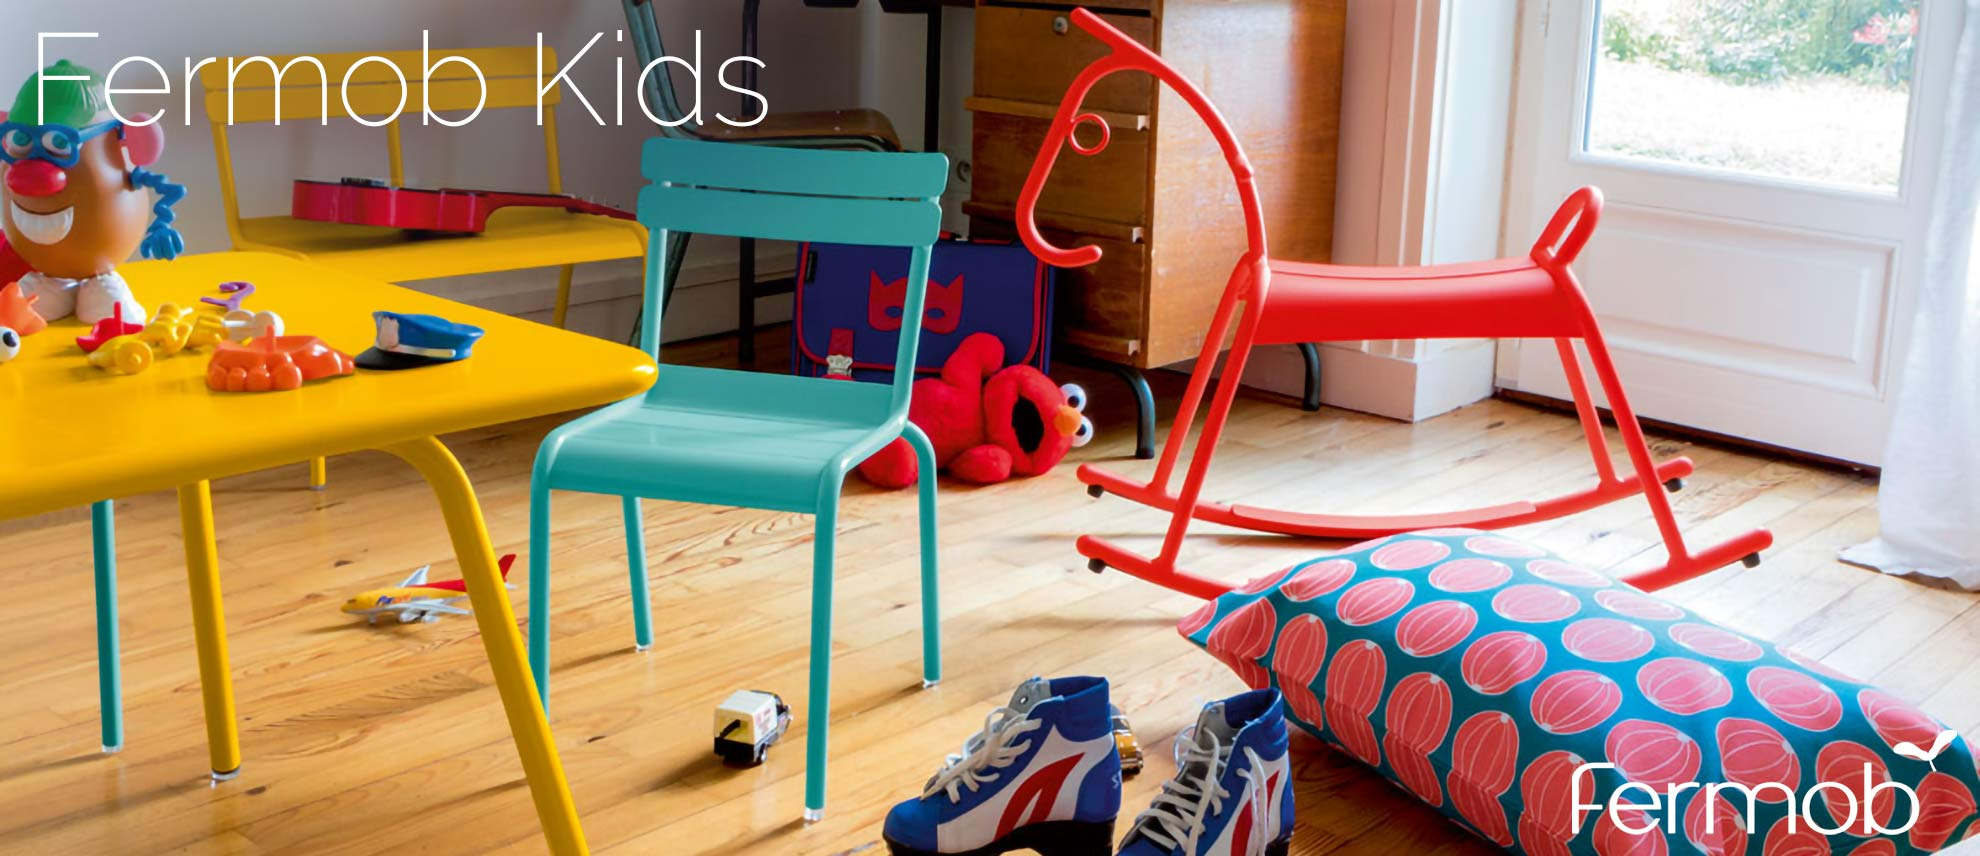 Fermob Kids Collection